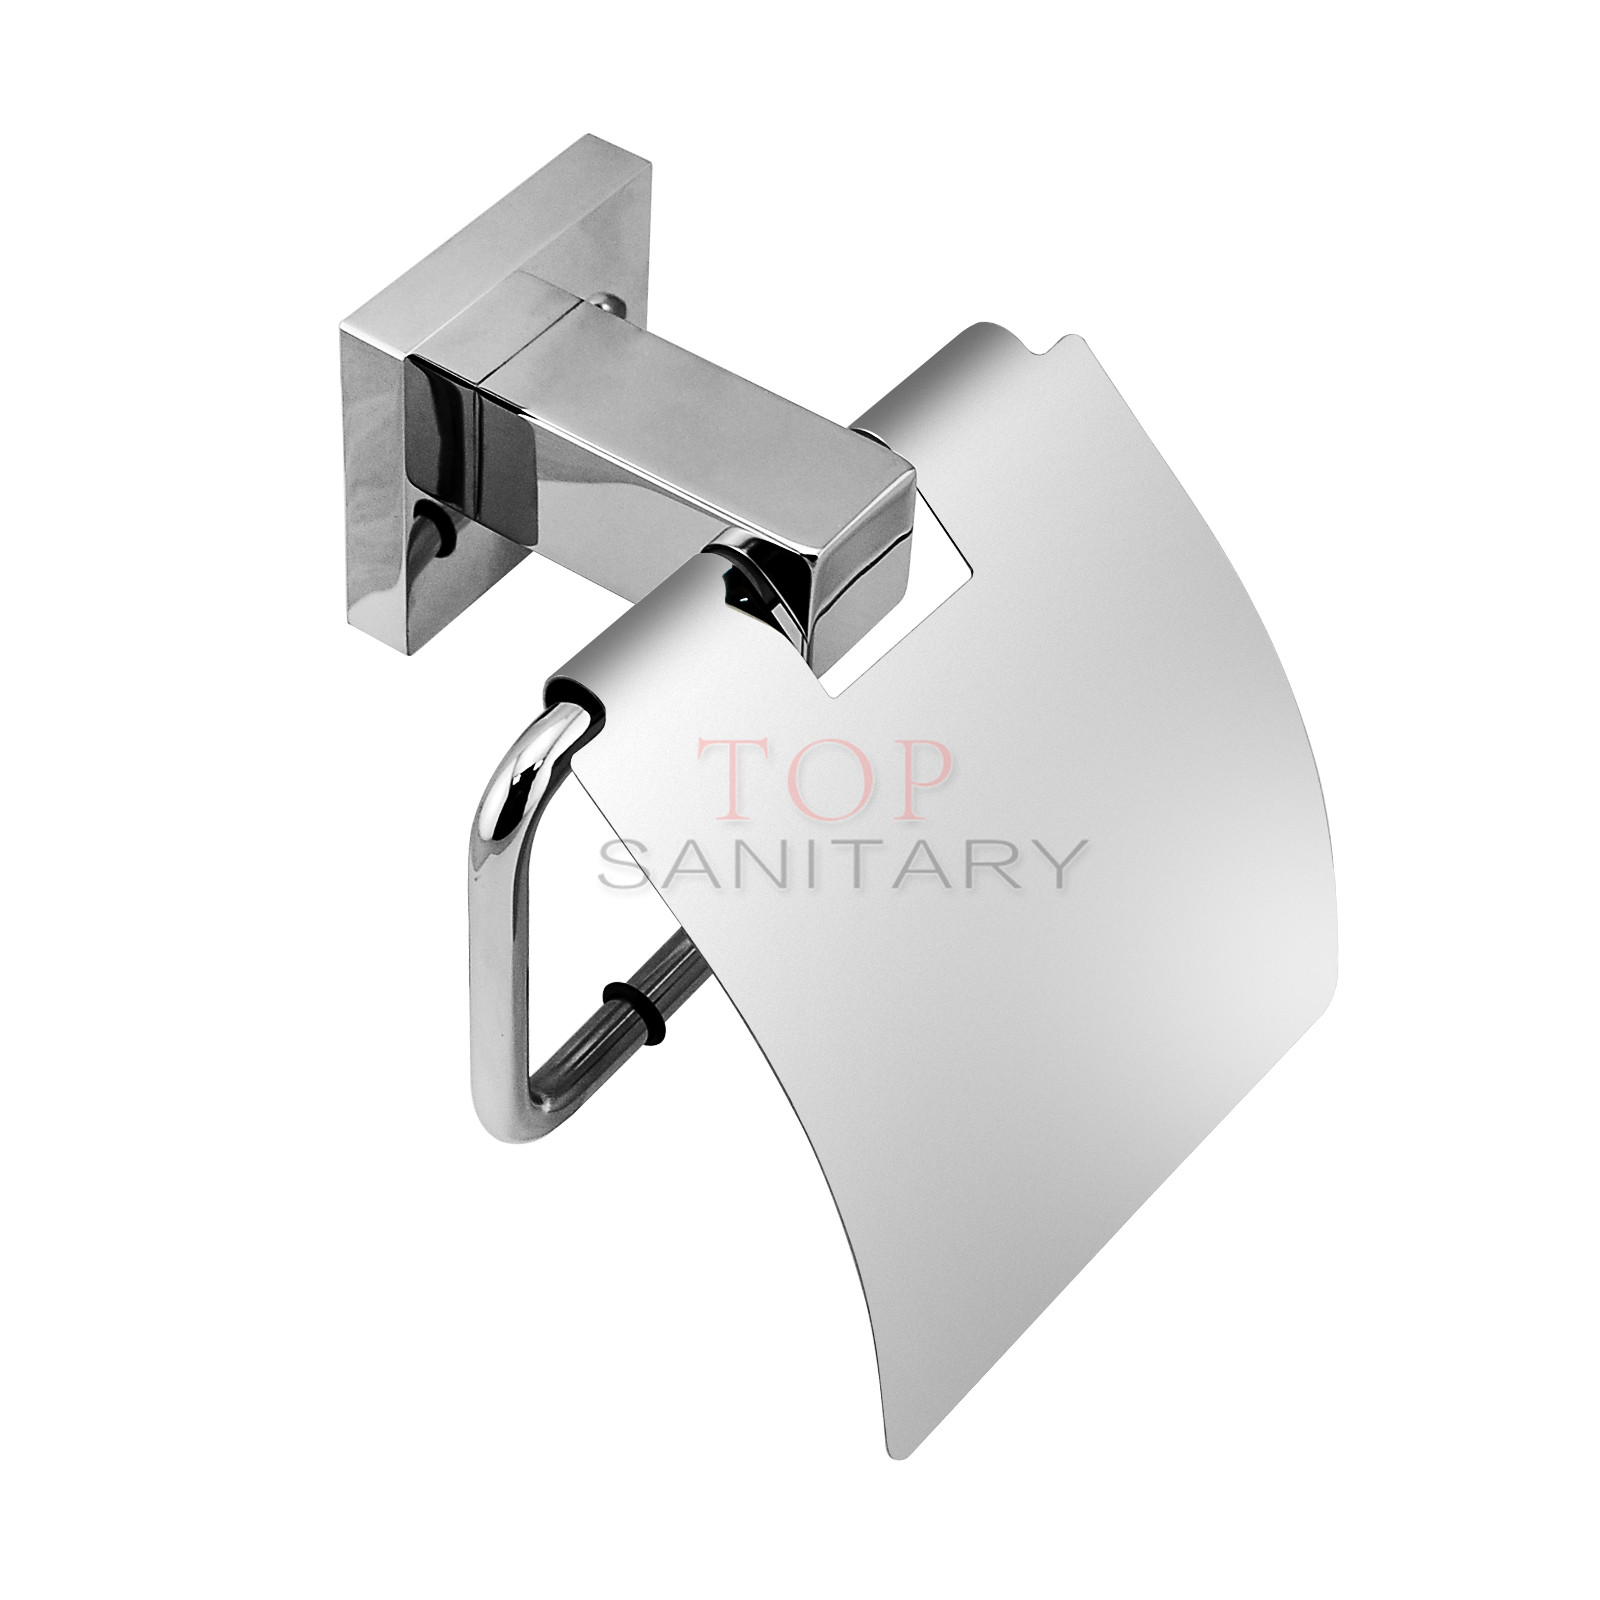 toilet paper holder with cover waterproof roll stainless steel 304 bath washroom ebay. Black Bedroom Furniture Sets. Home Design Ideas